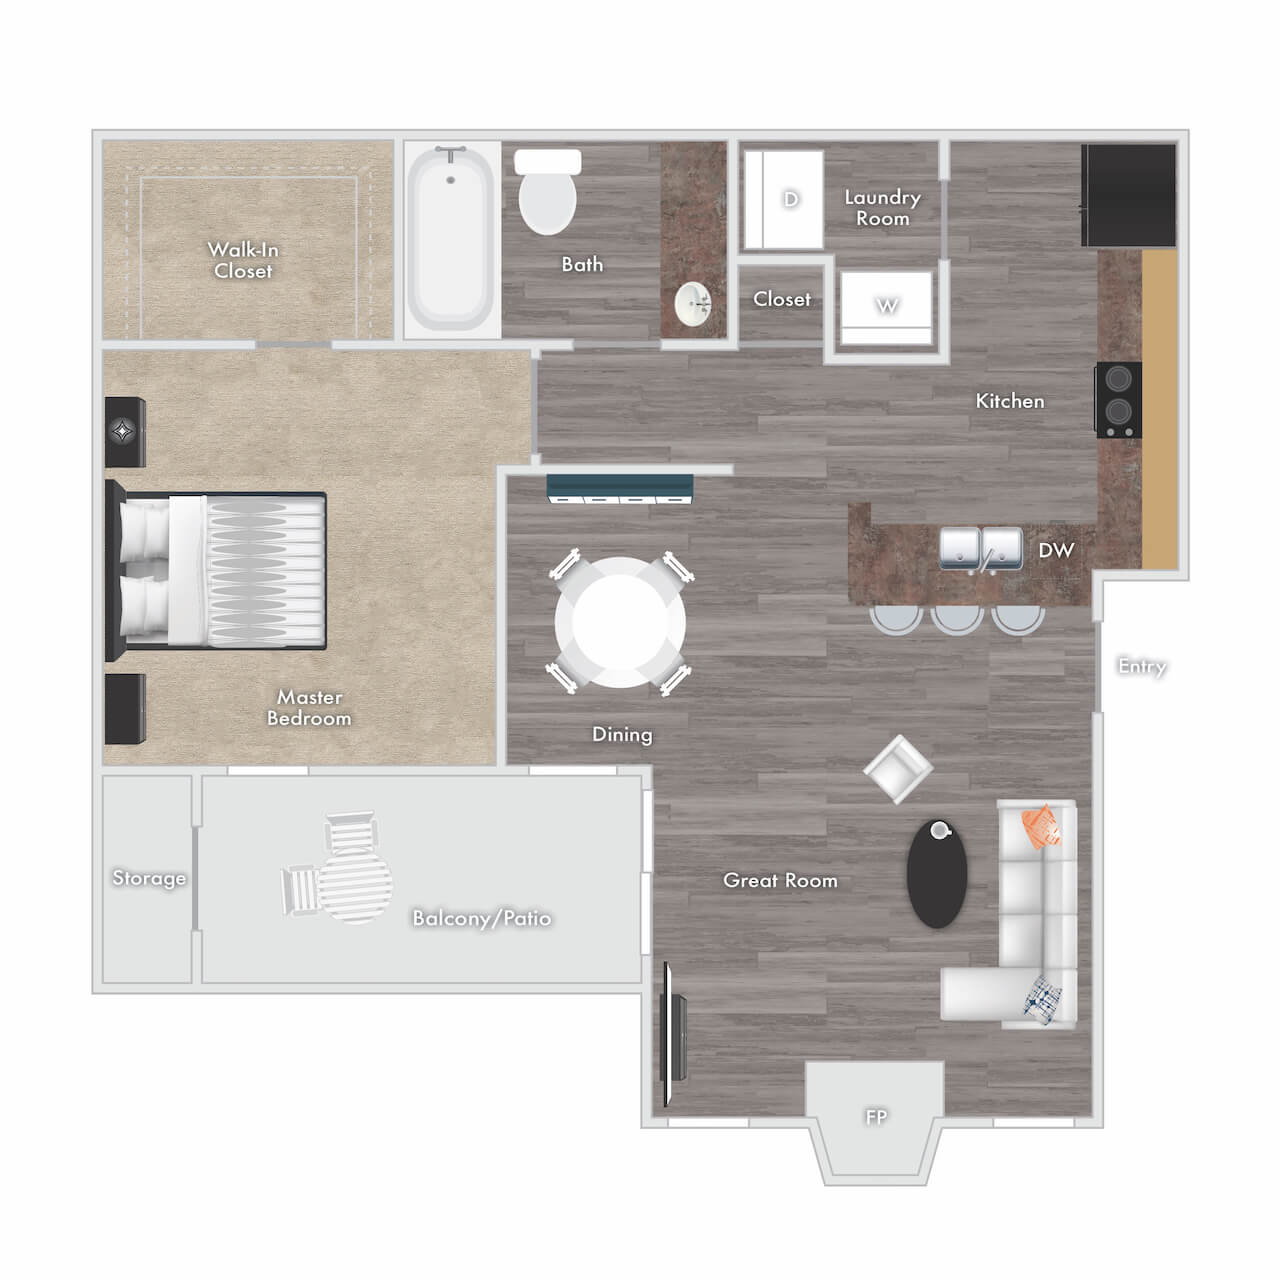 Kenmore floor plan - 1 bed 1 bath with fireplace, balcony, and storage